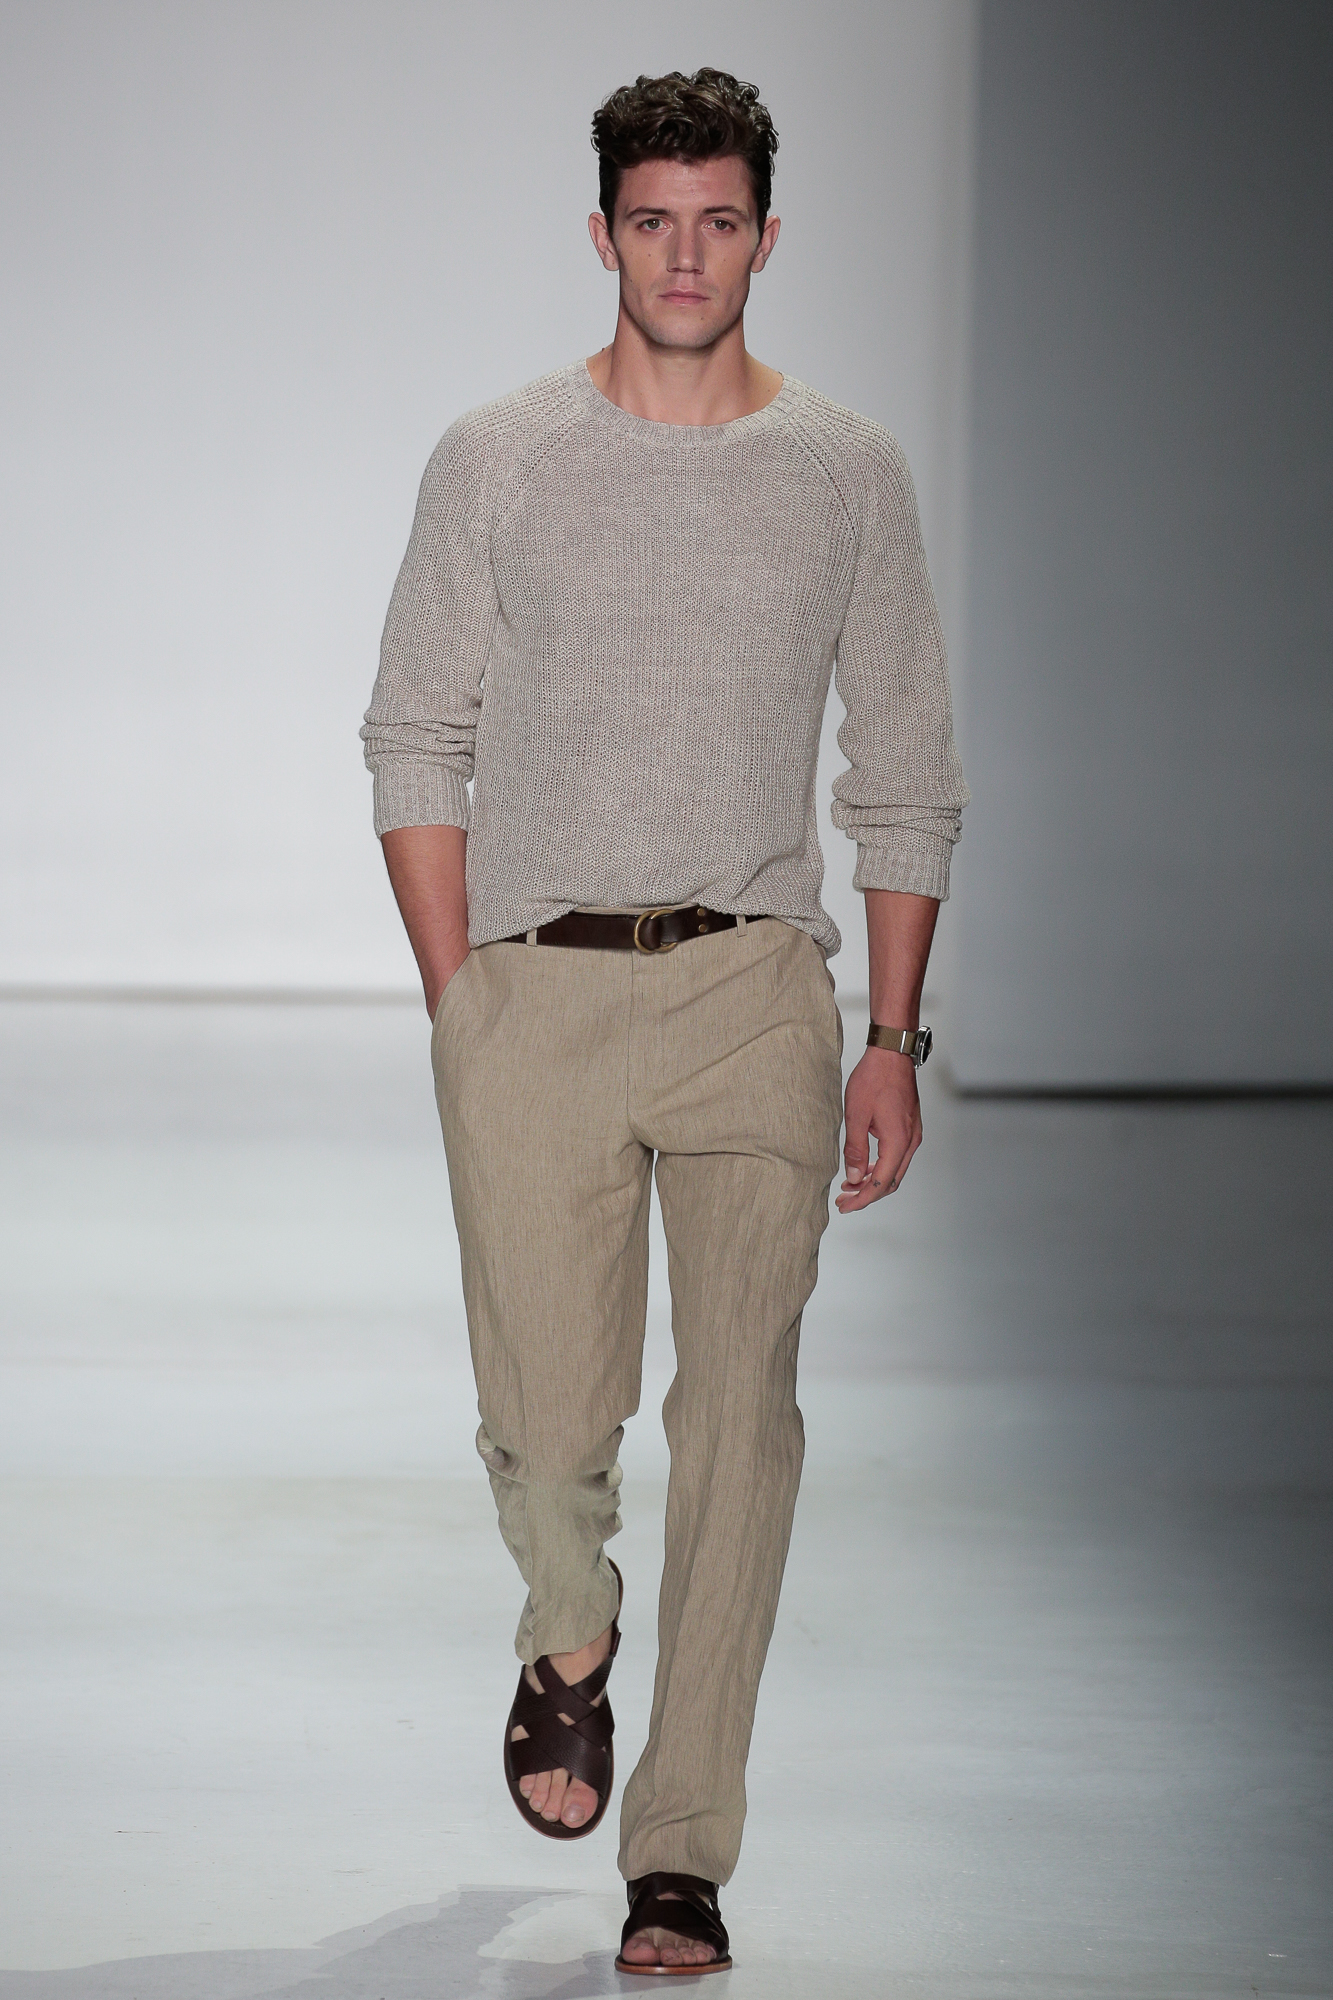 Todd Snyder - Runway - New York Fashion Week: Men's S/S 2016